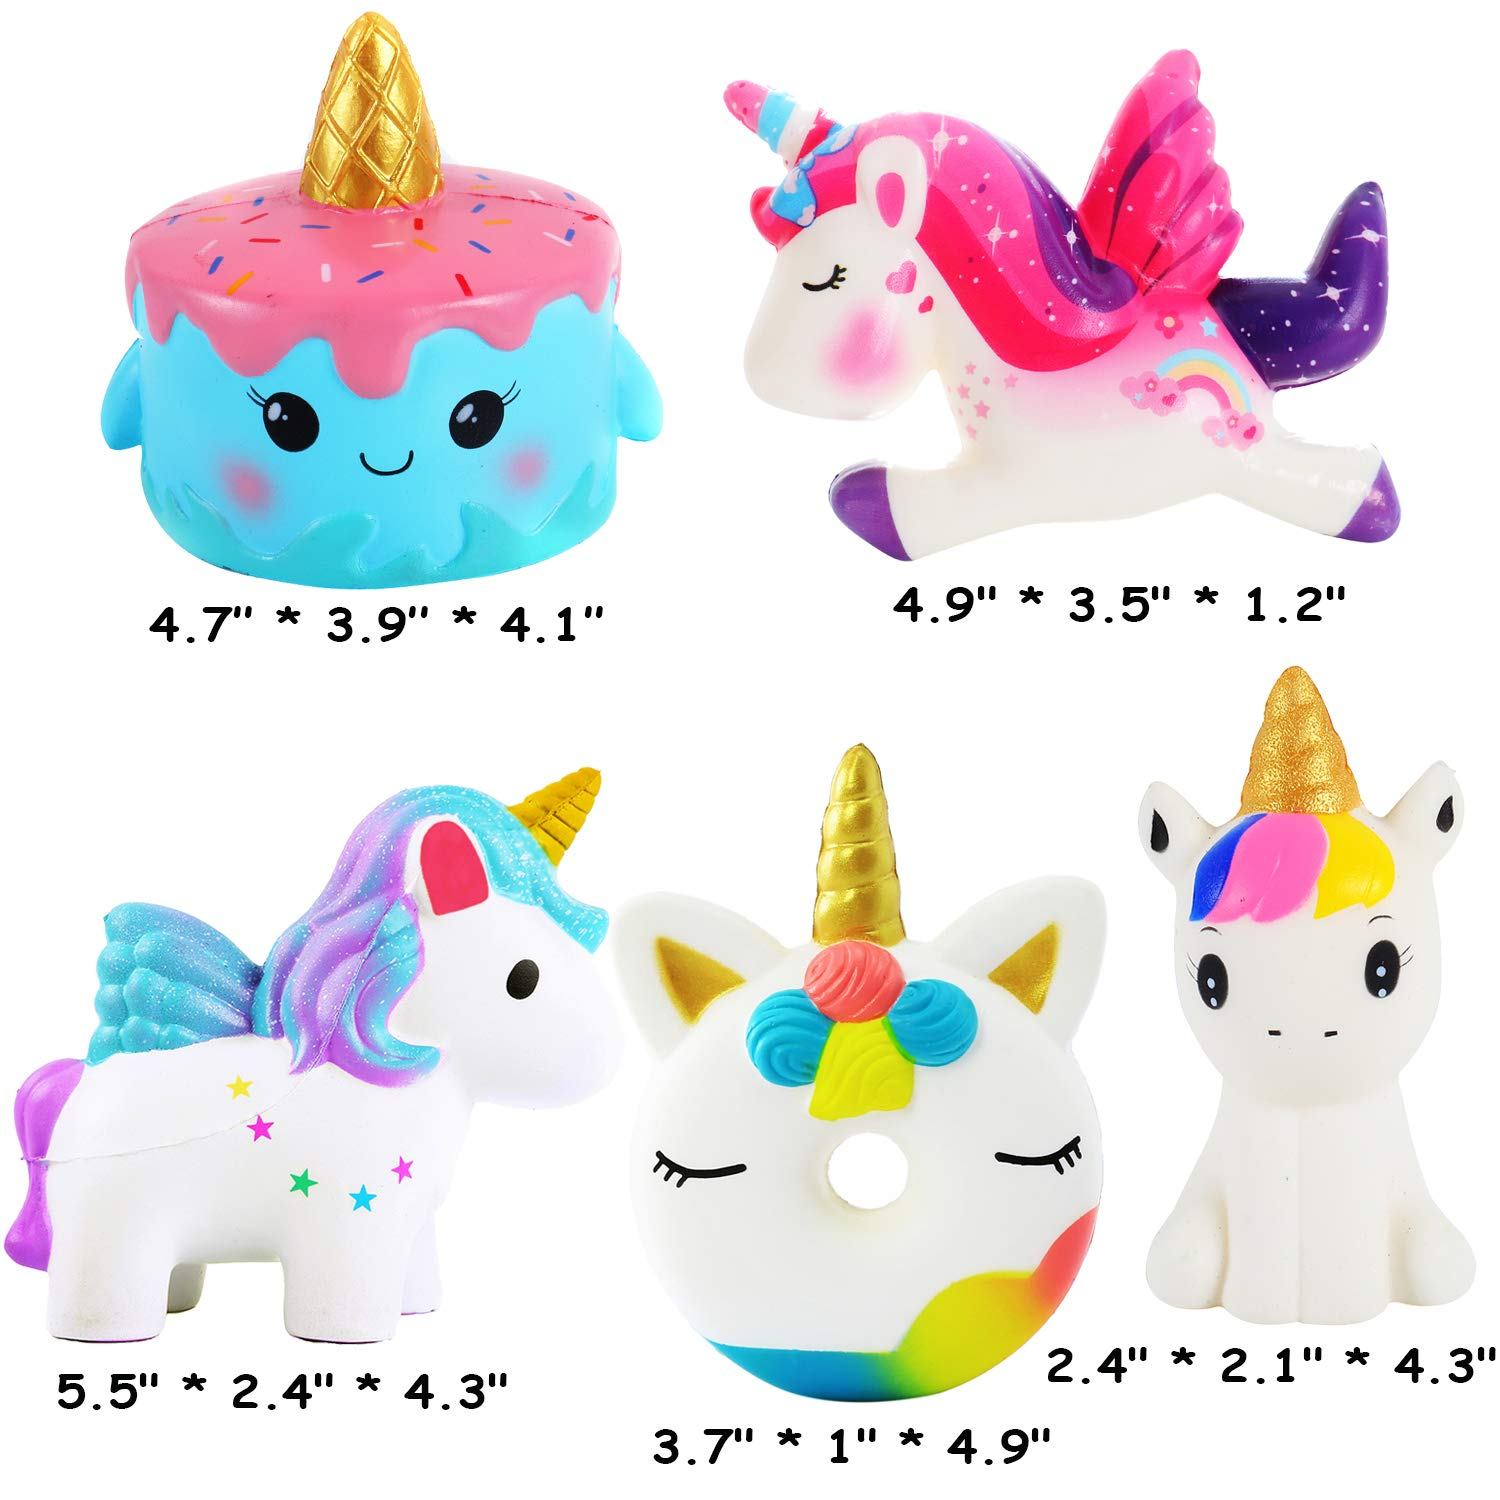 AOLIGE Kawaii Slow Rising Squishies Pack Unicorn Cake Donut Squishy Toys for Boys and Girls 5Pcs by AOLIGE (Image #2)